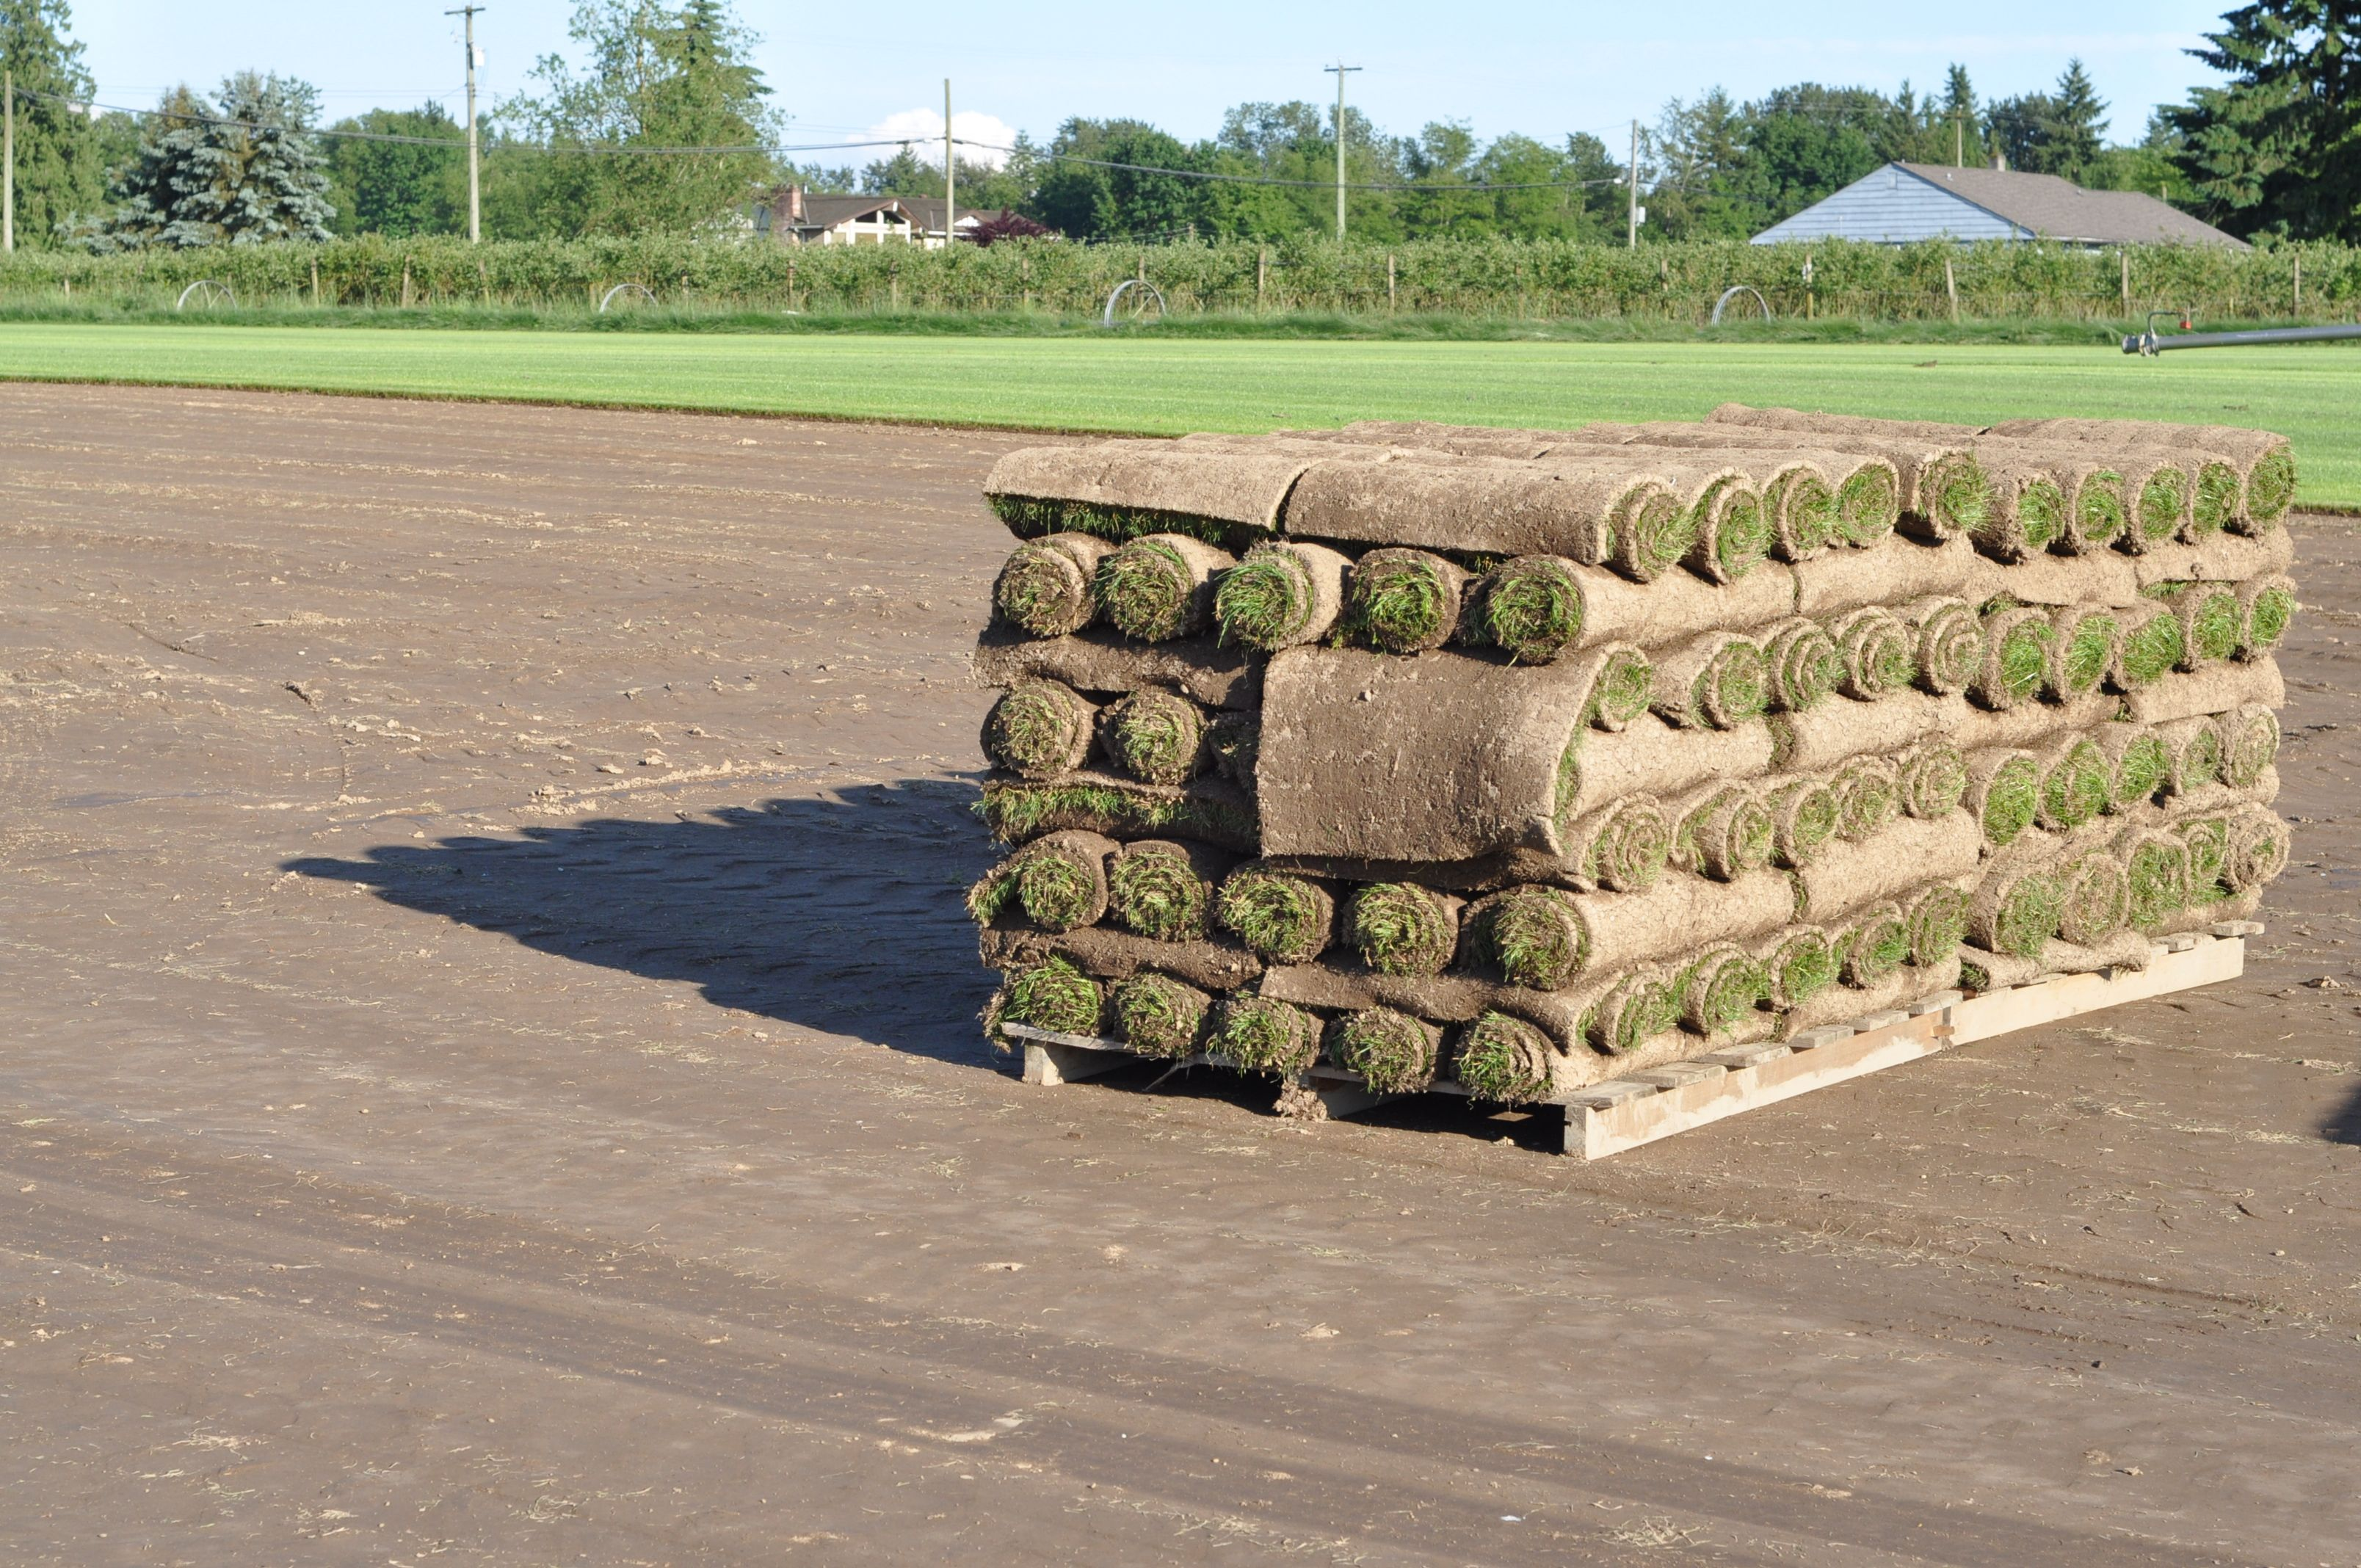 Quality Topsoil Sod Grass For Sale In Bc Grass For Sale Sod Grass Top Soil